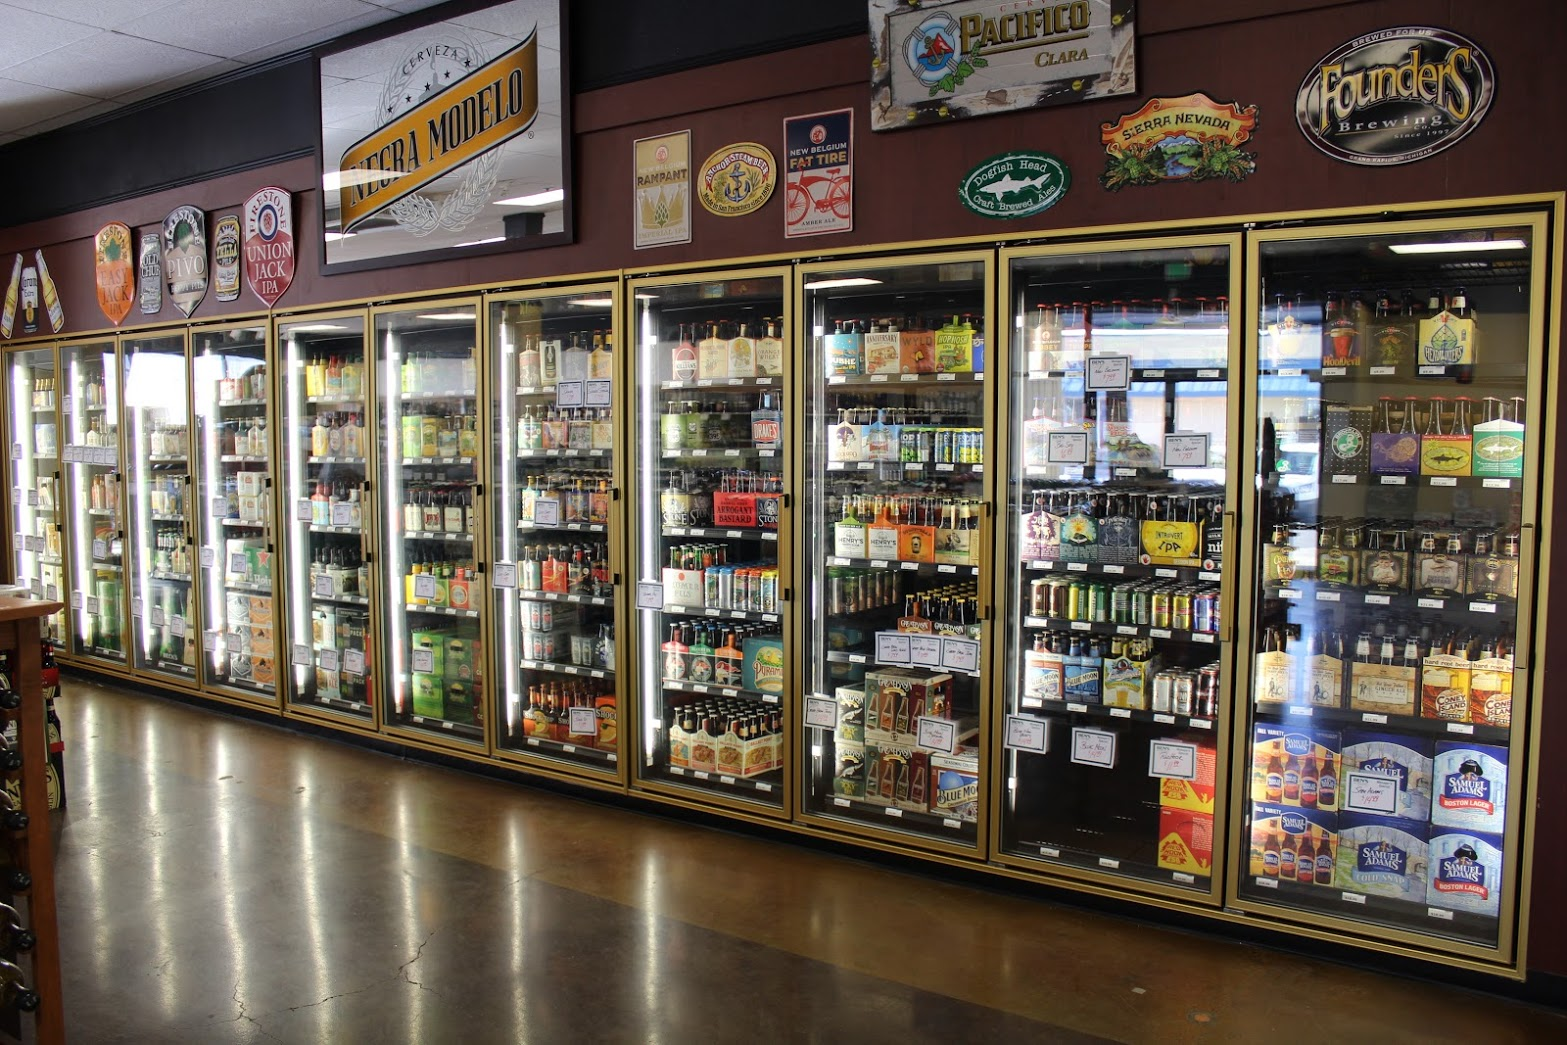 Ben's Fine Wine & Spirits – The Best Buys are at Ben's